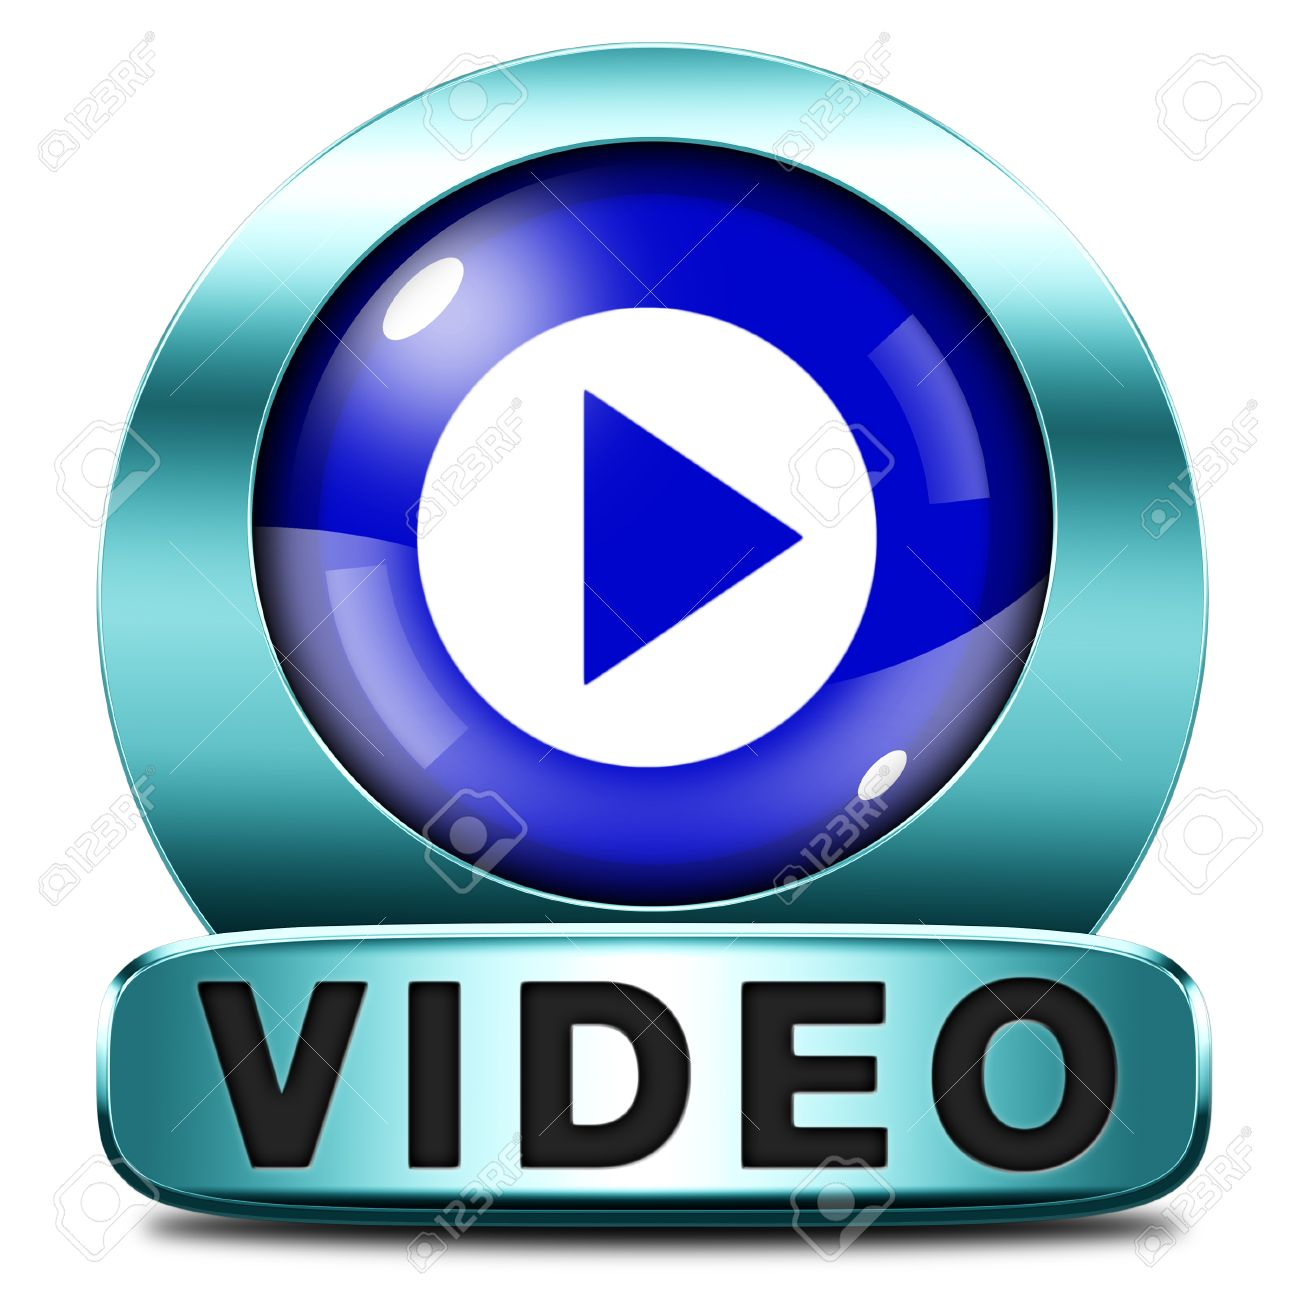 ddd6089c Play video clip or watch movie online or in live stream, multimedia button  banner or